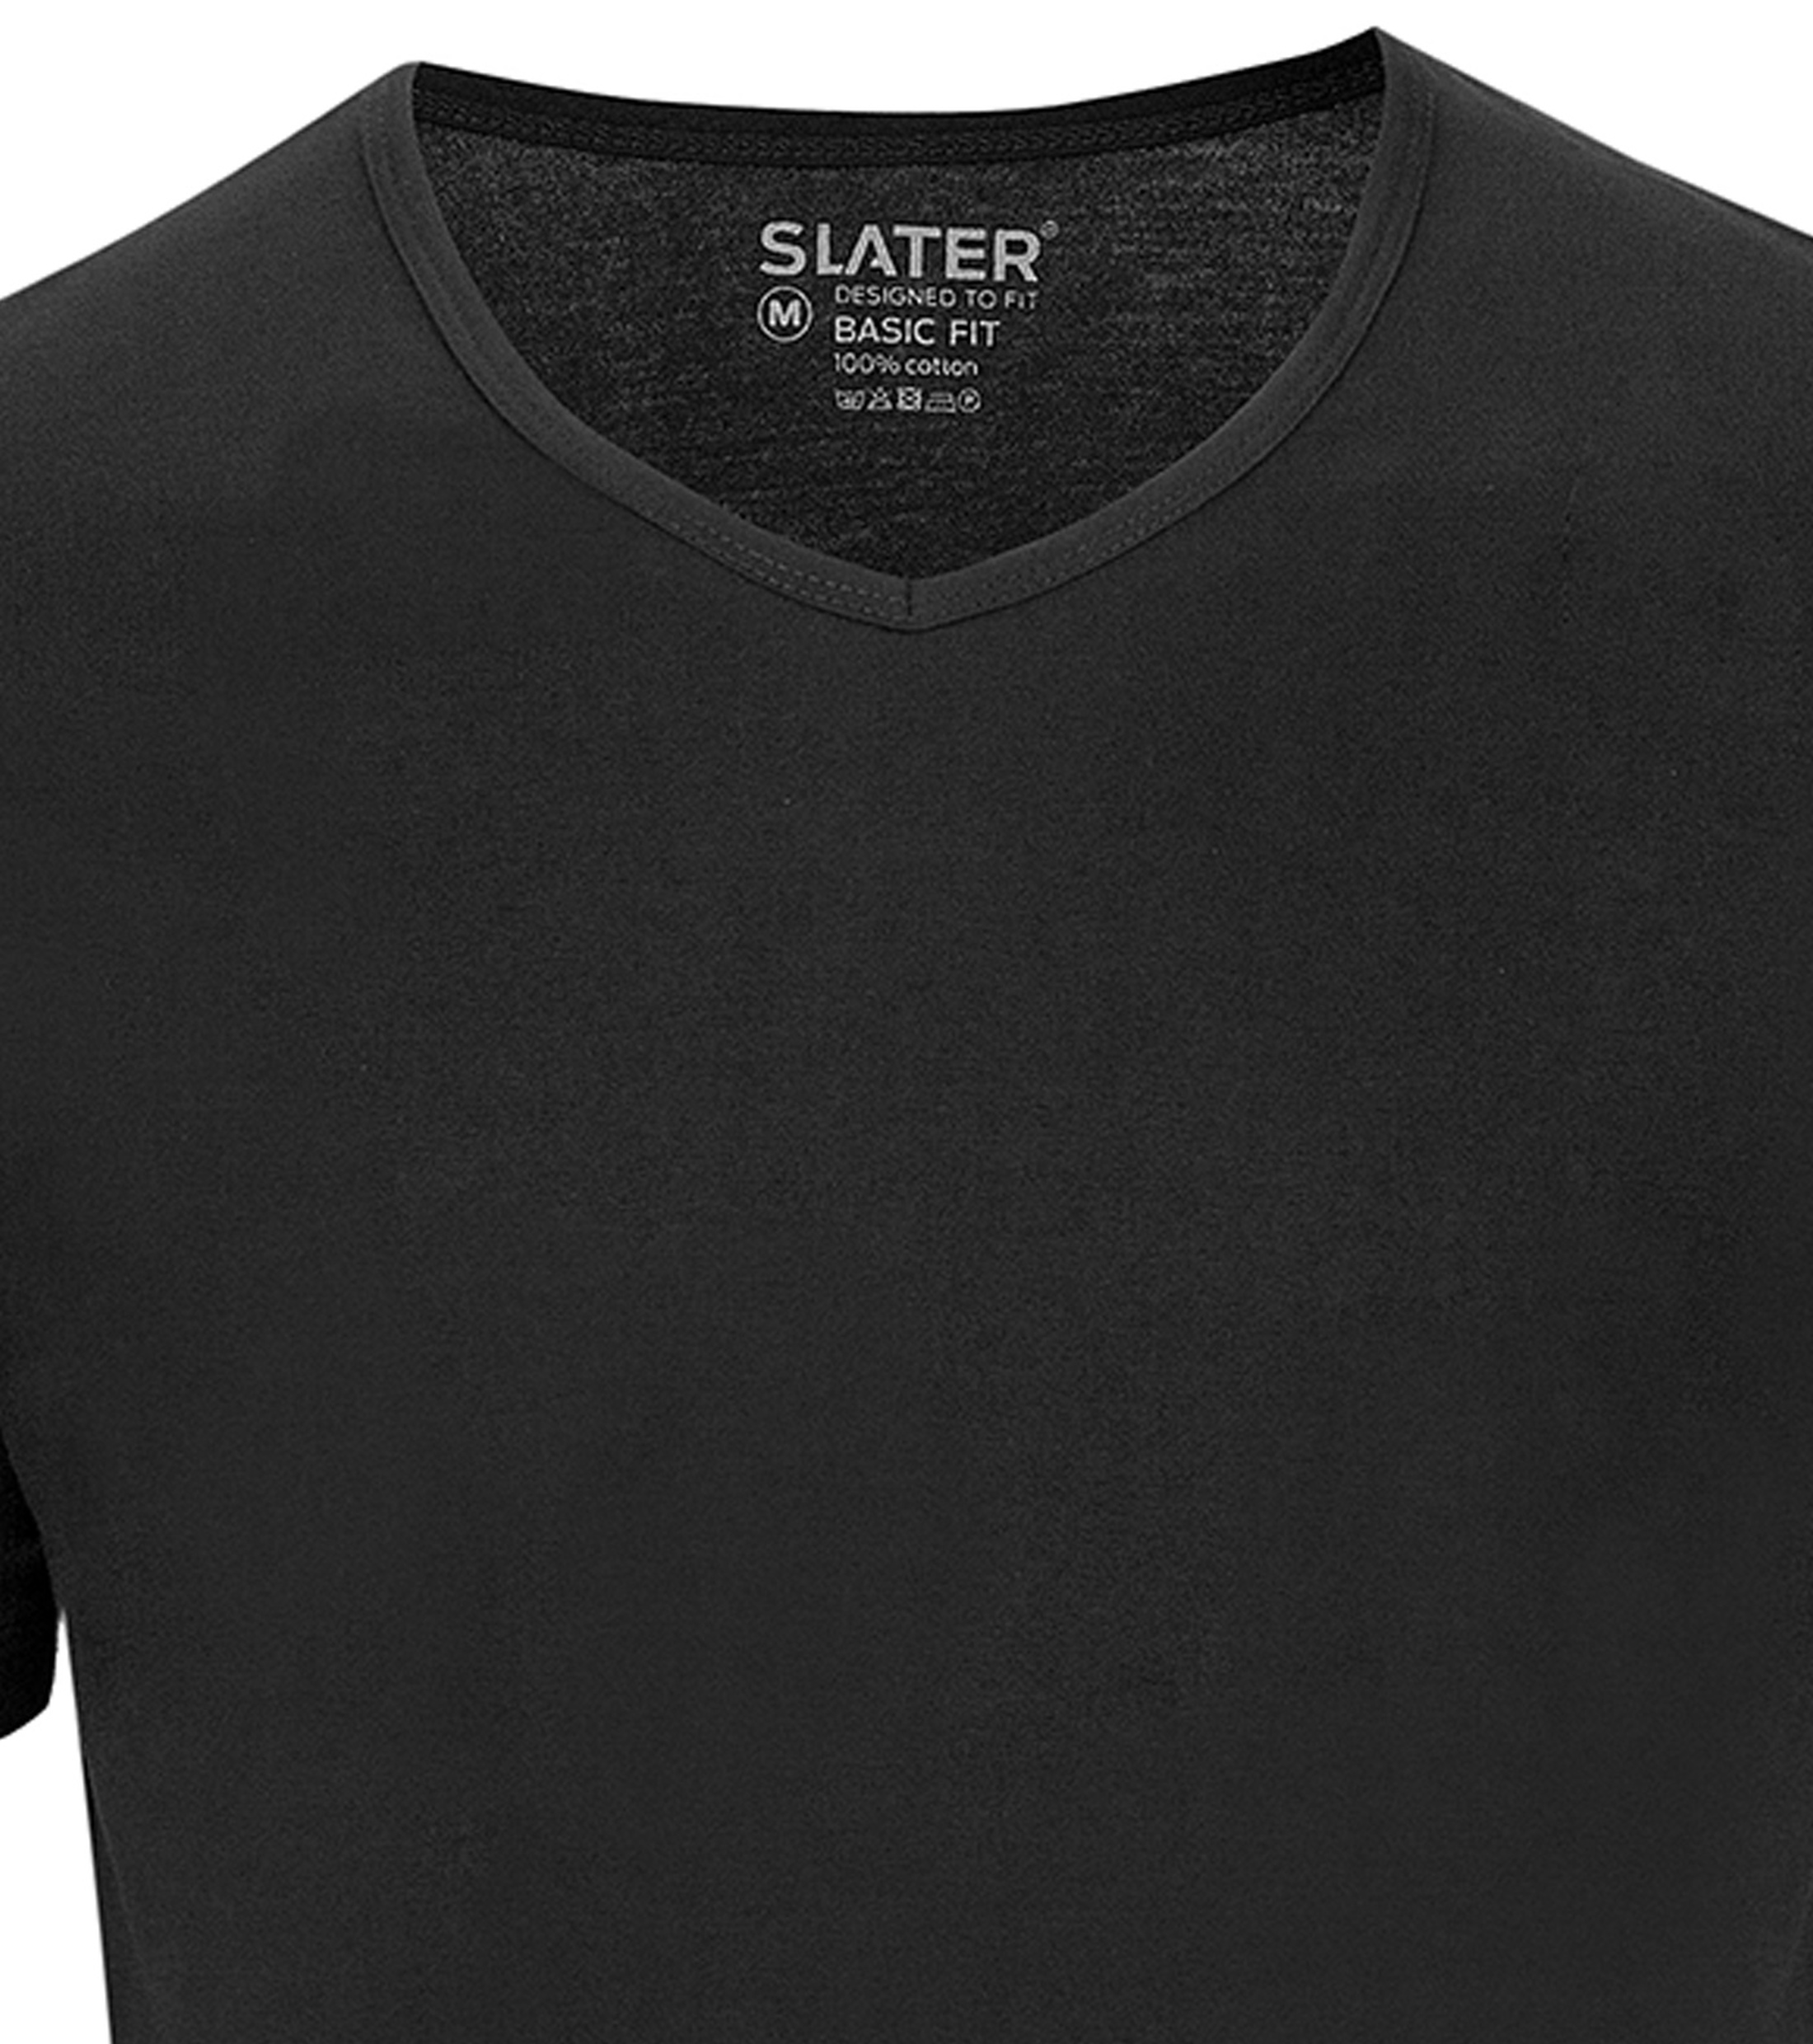 Slater 2-pack Basic Fit T-shirt V-neck Black foto 1